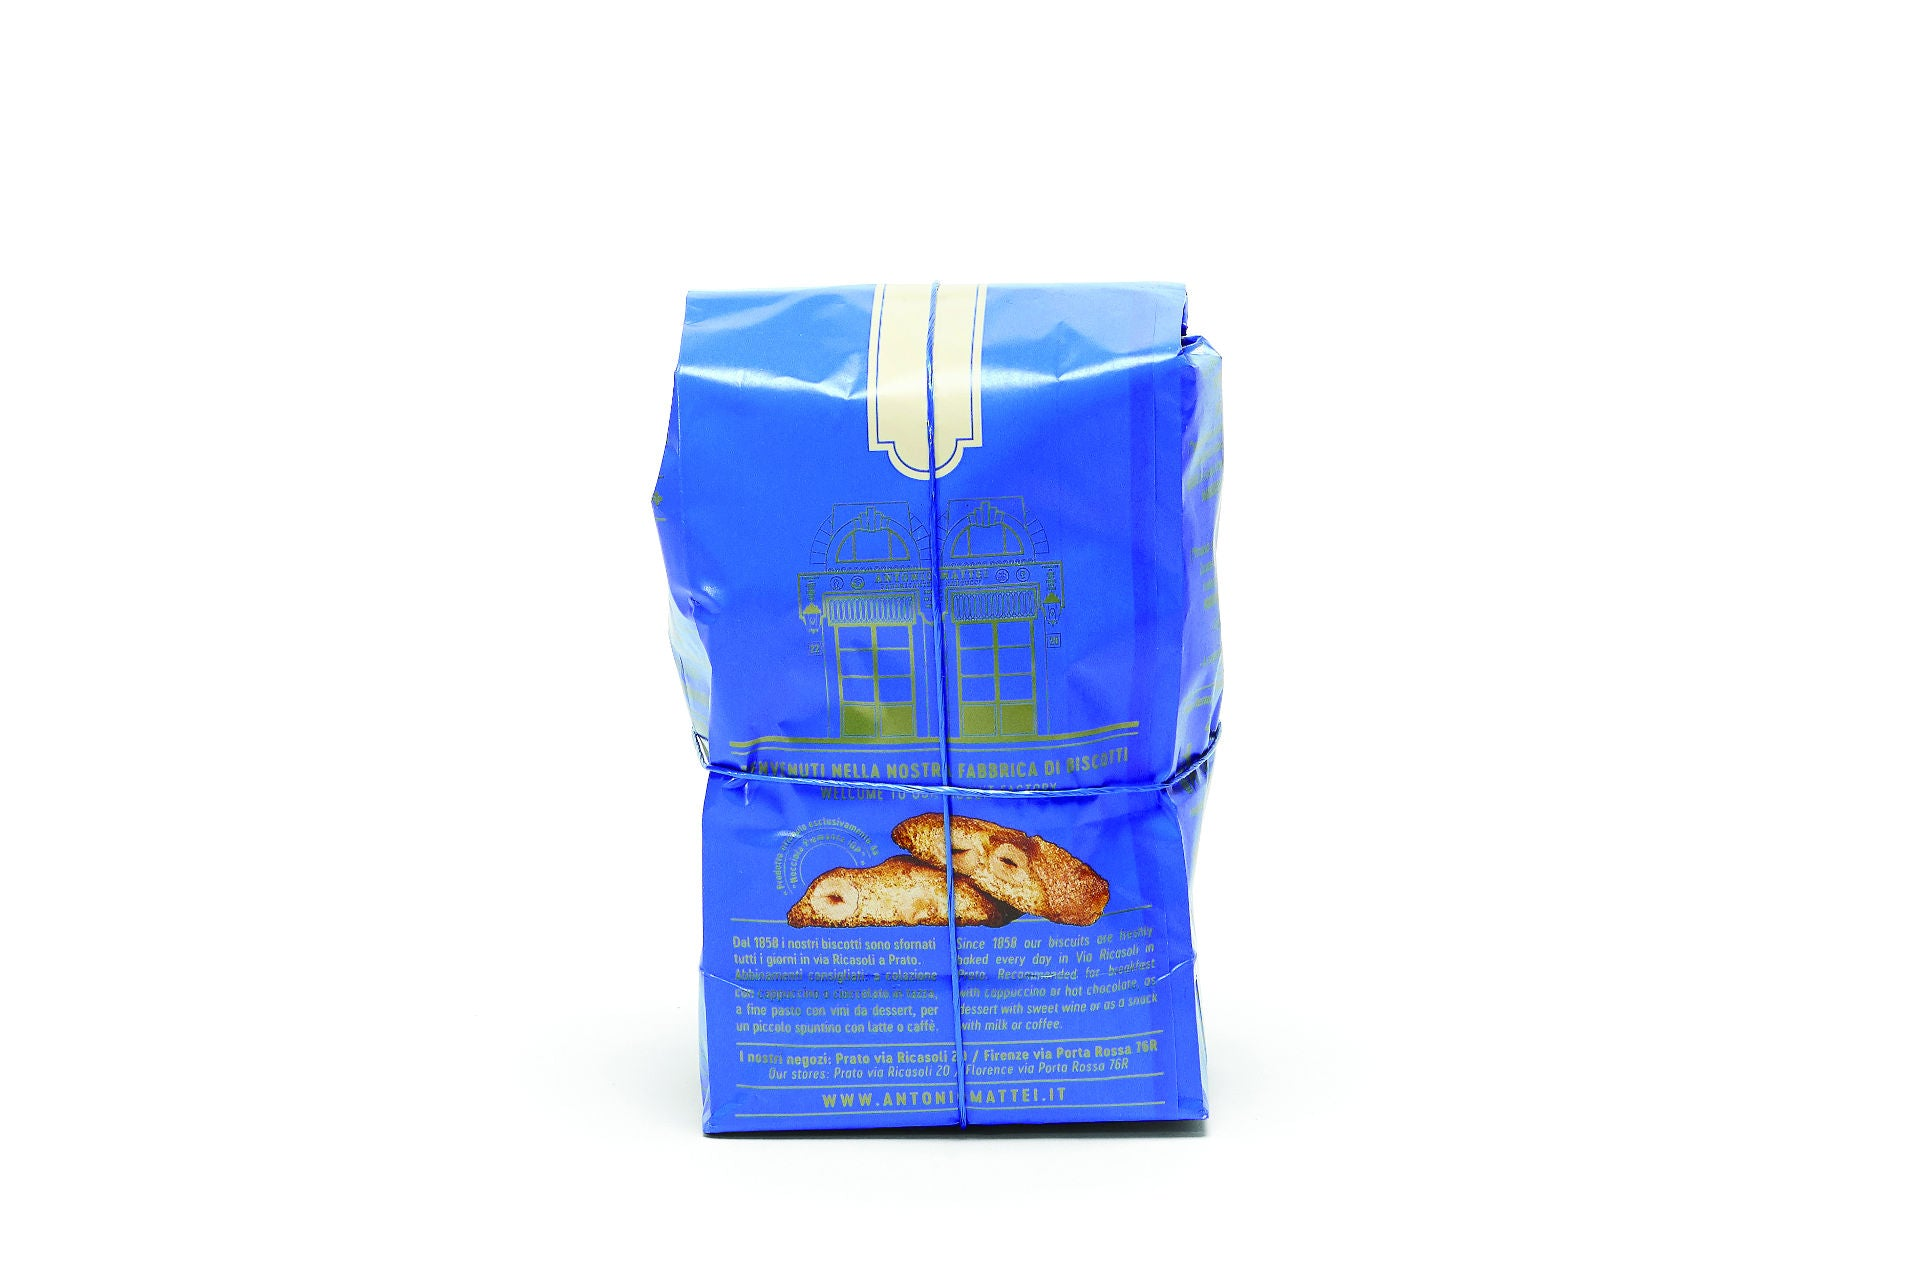 Antonio Mattei Hazelnuts Cantucci Made in Prato, Tuscany - Shop at the Red Beetle